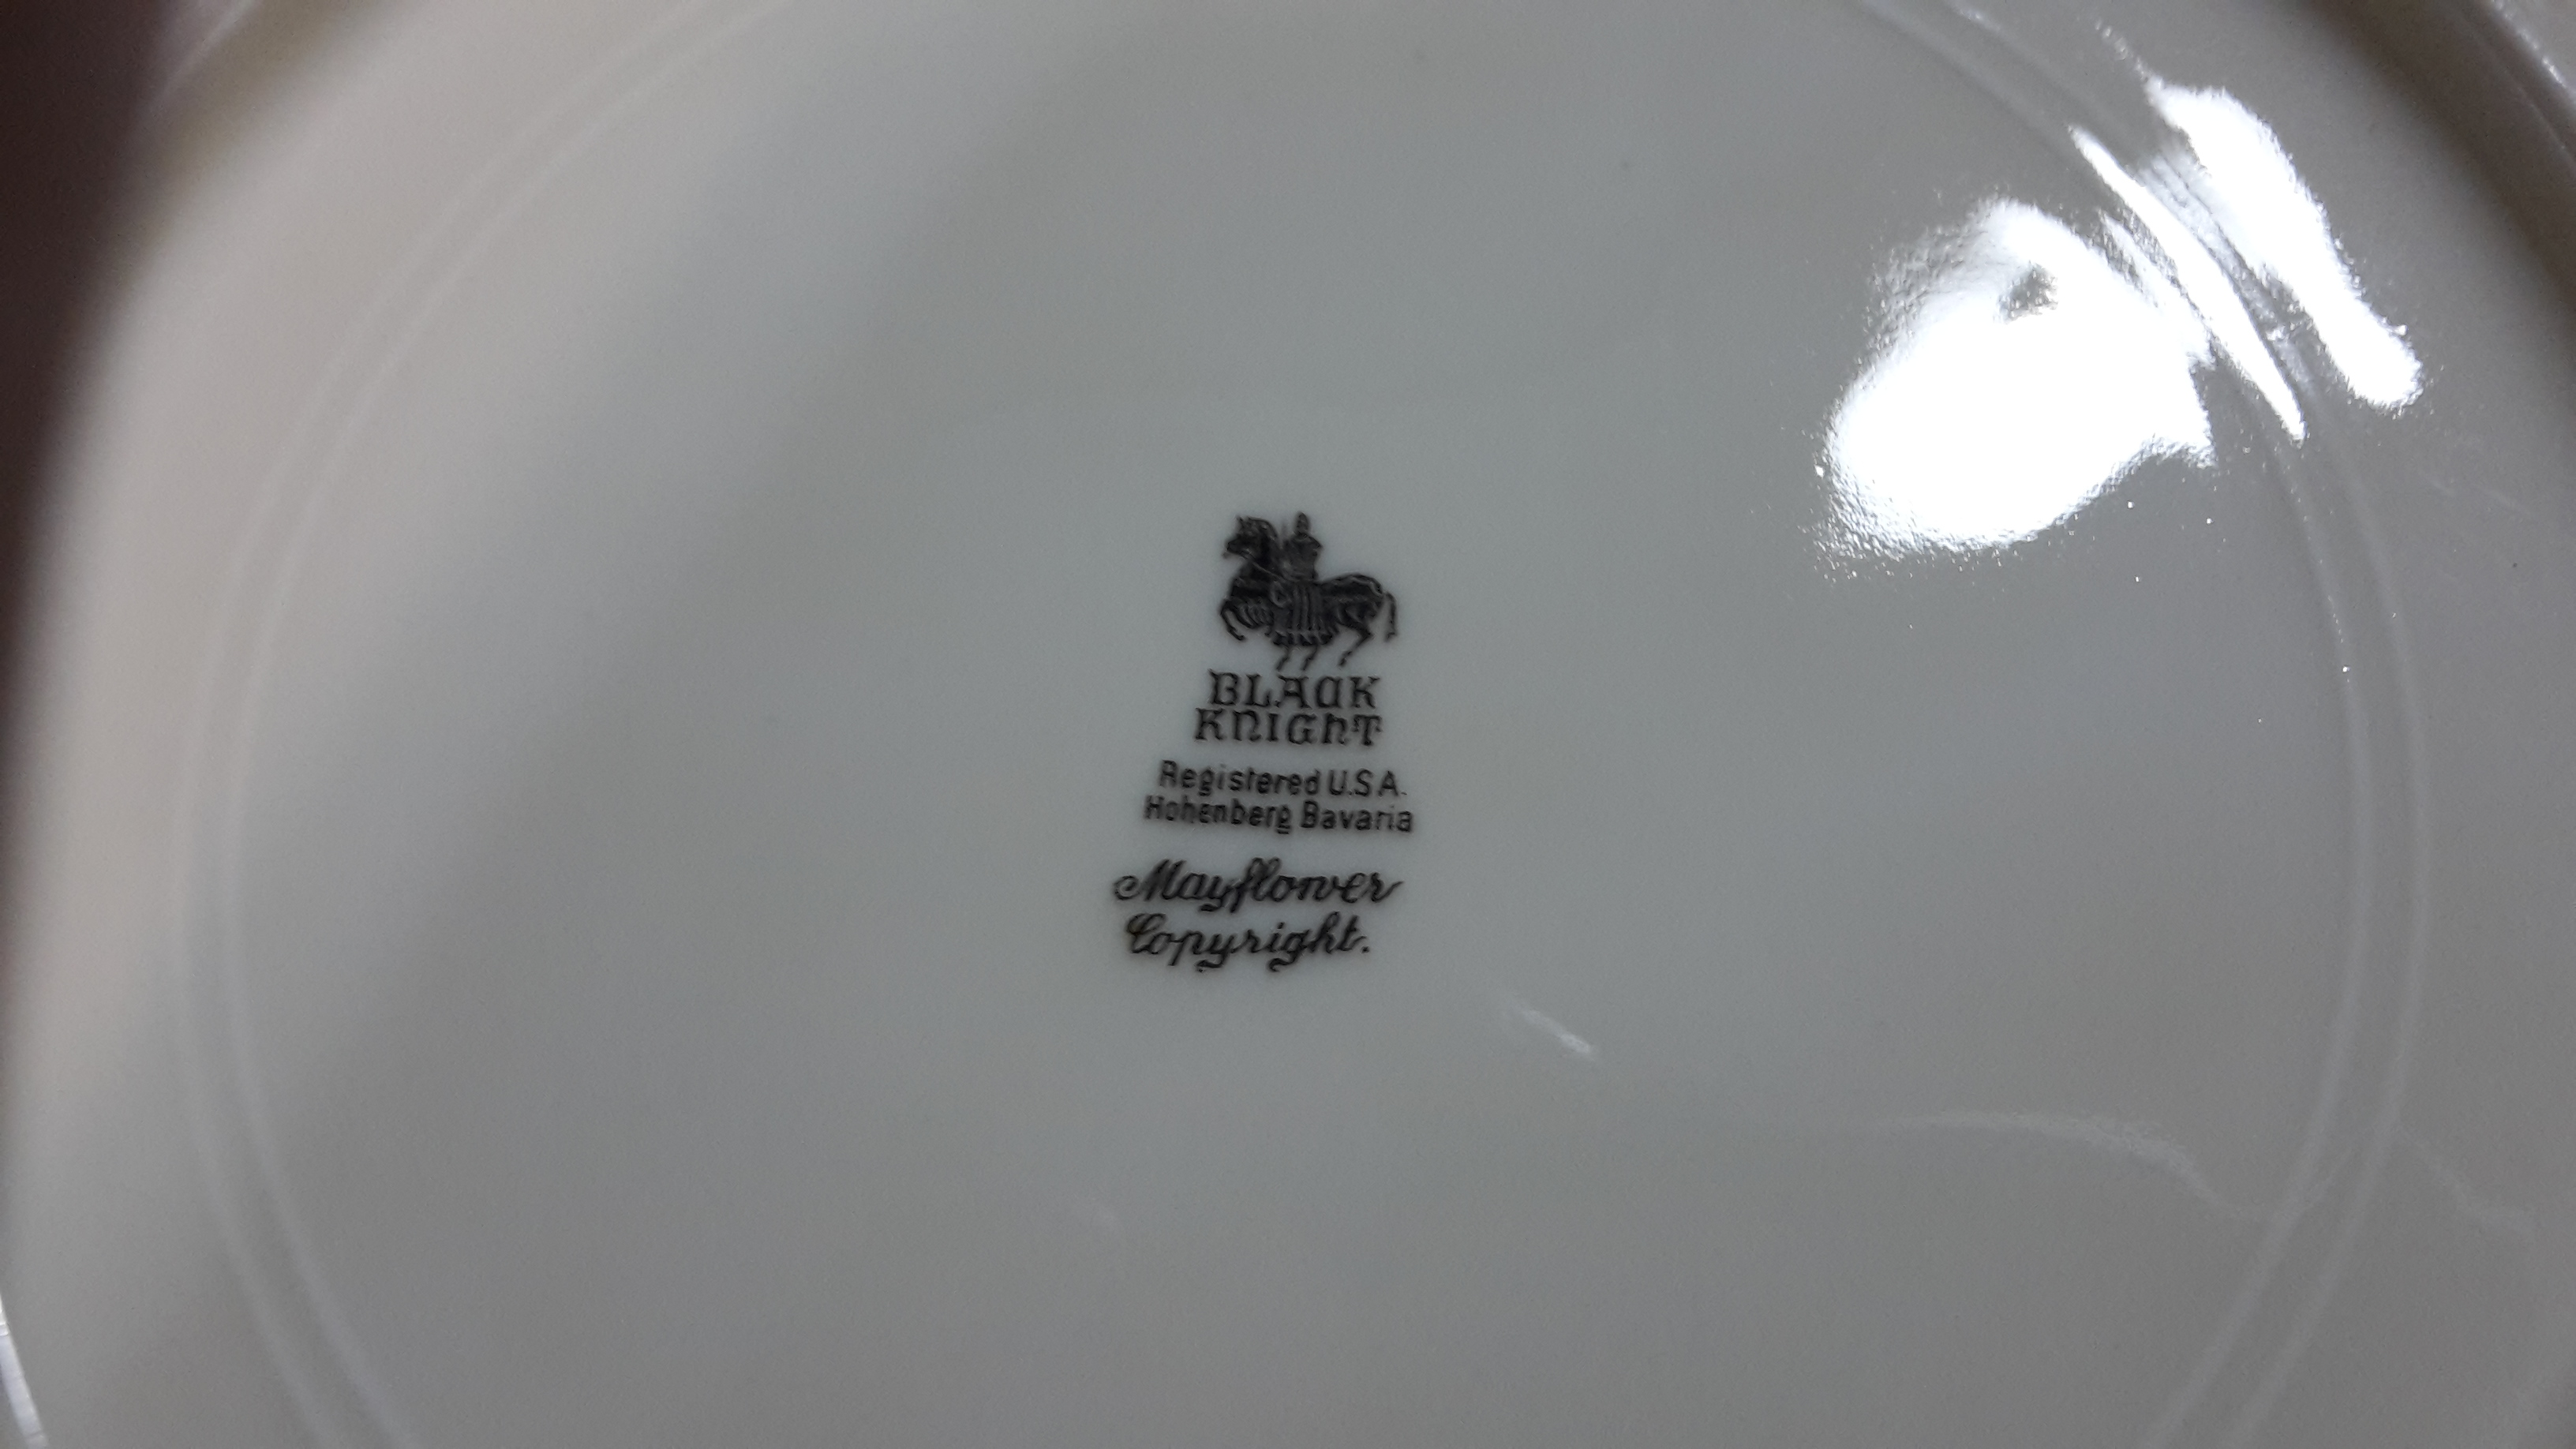 Black Knight Logo on rear of plate.jpg